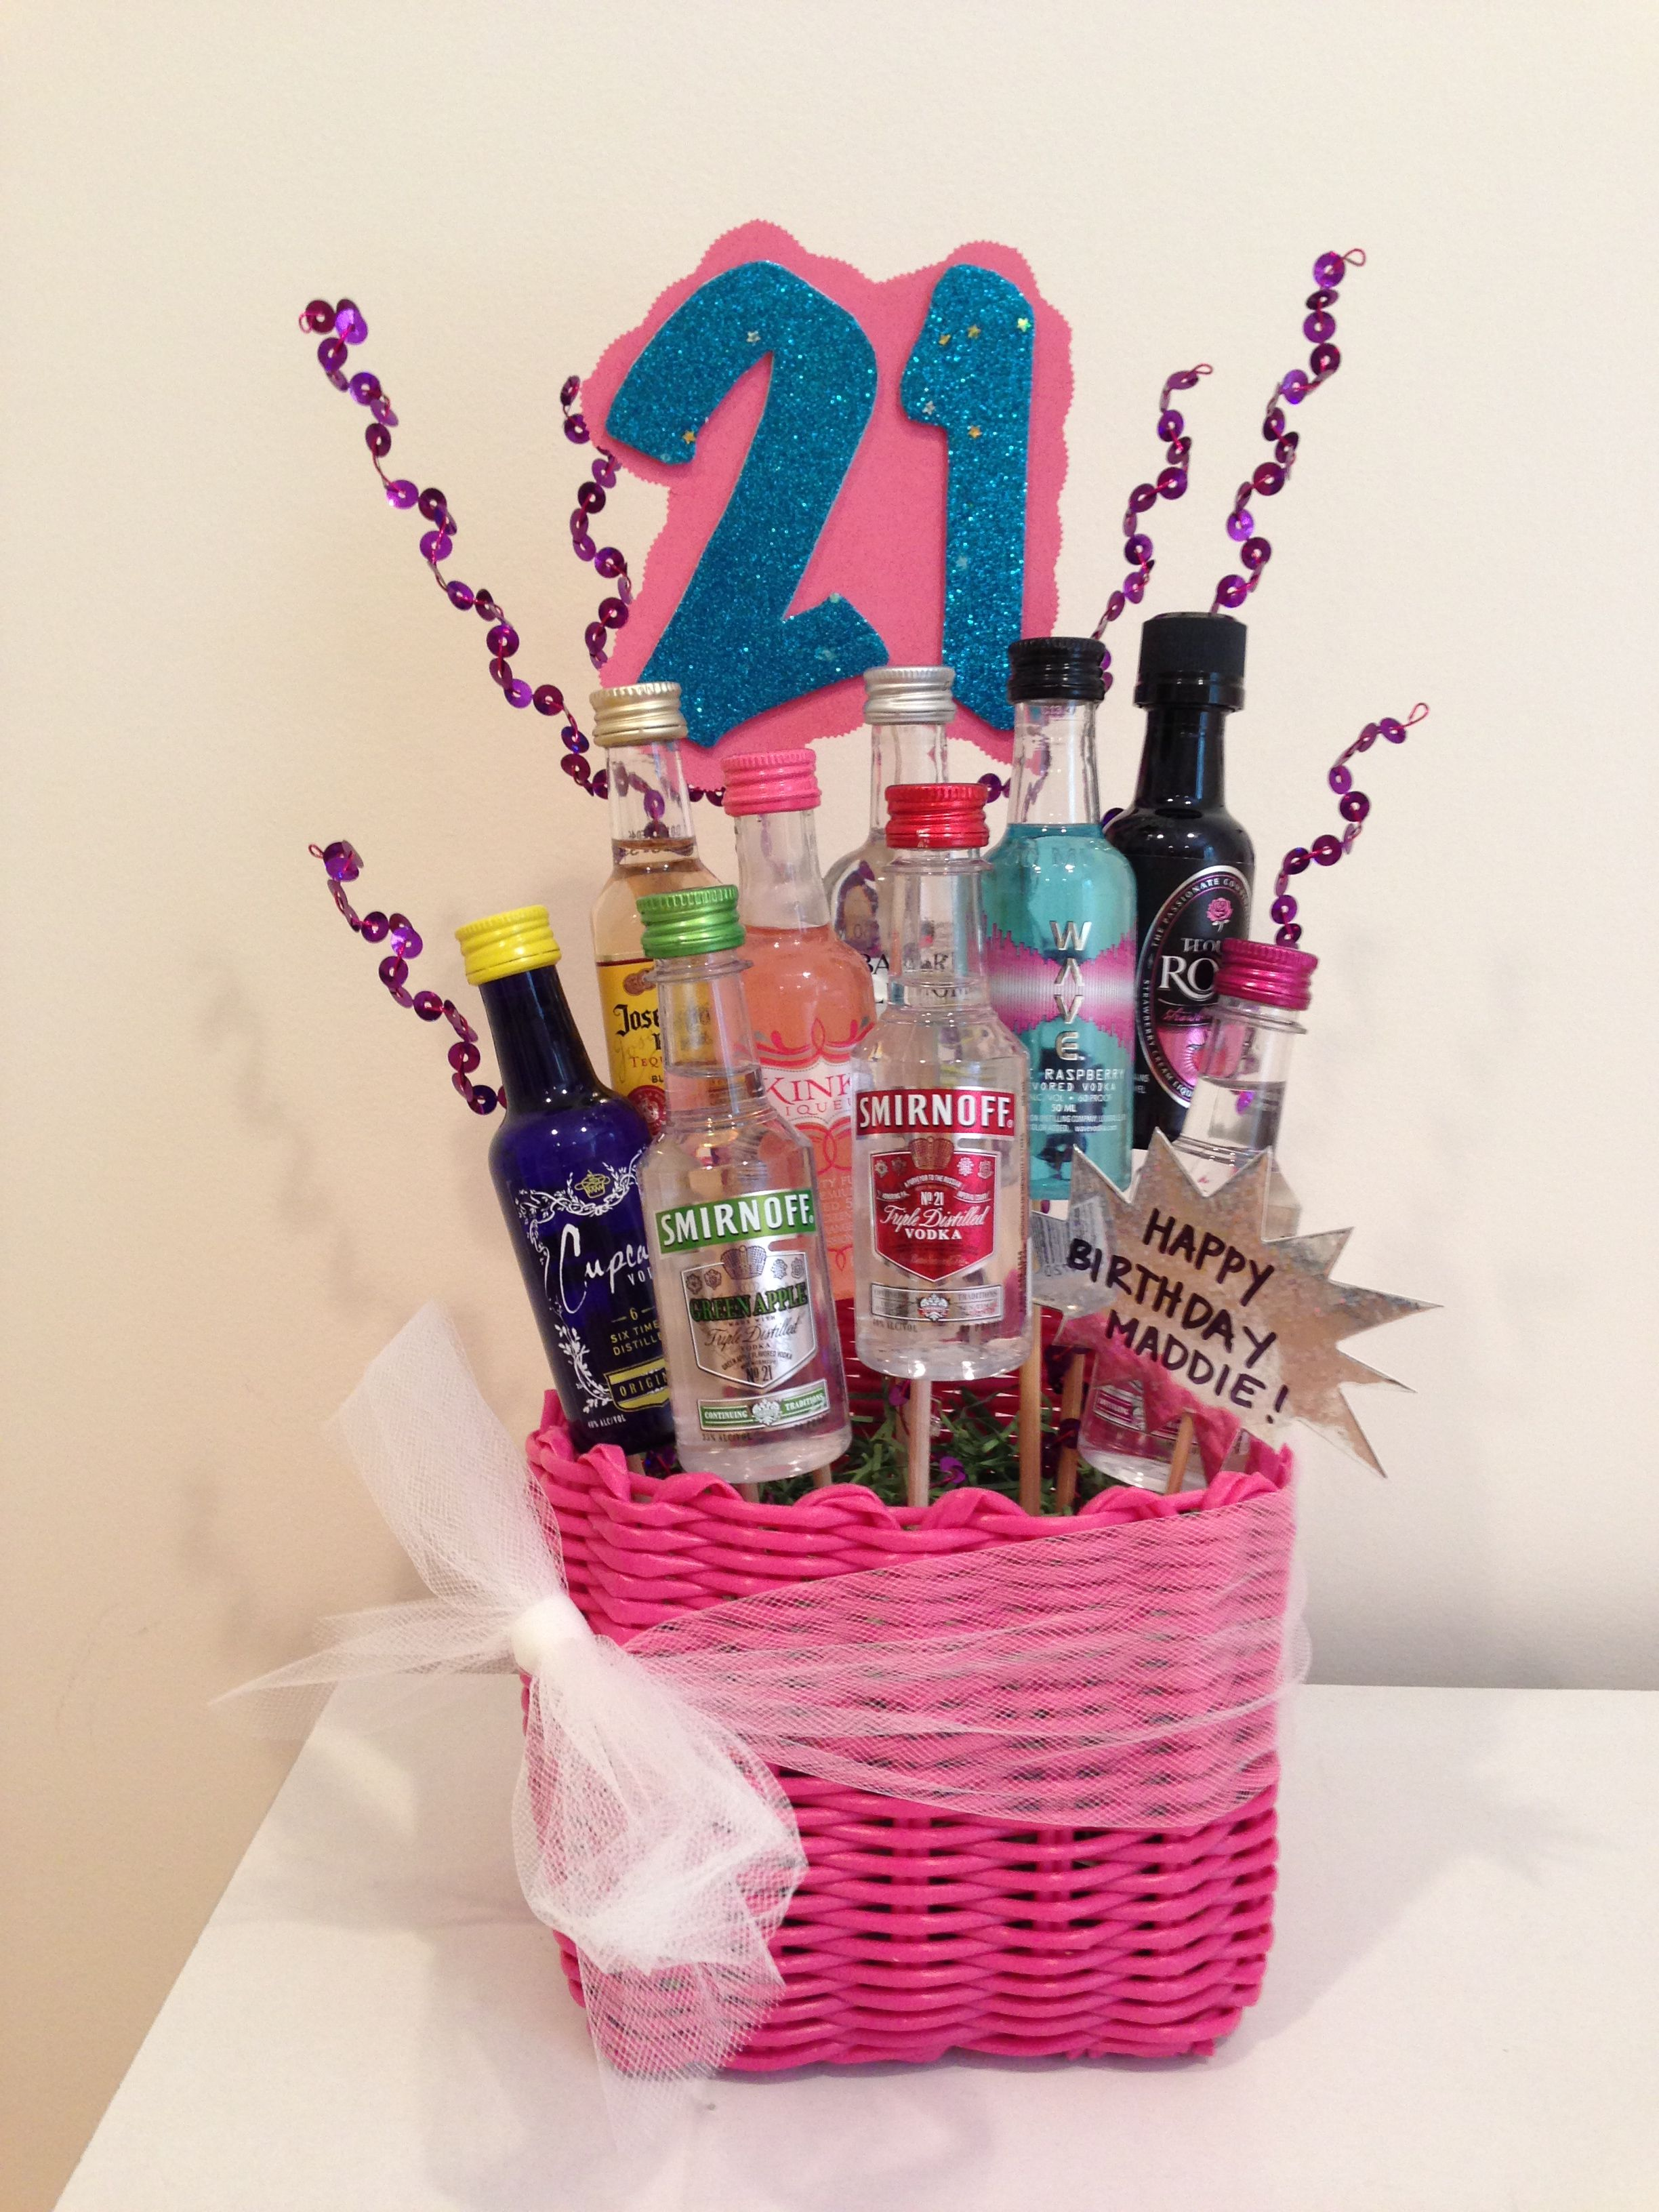 21st Birthday Gift Basket Great Idea Im So Going To Do This For My Sisters Love The Jacket But Hair I Just Dont Get It